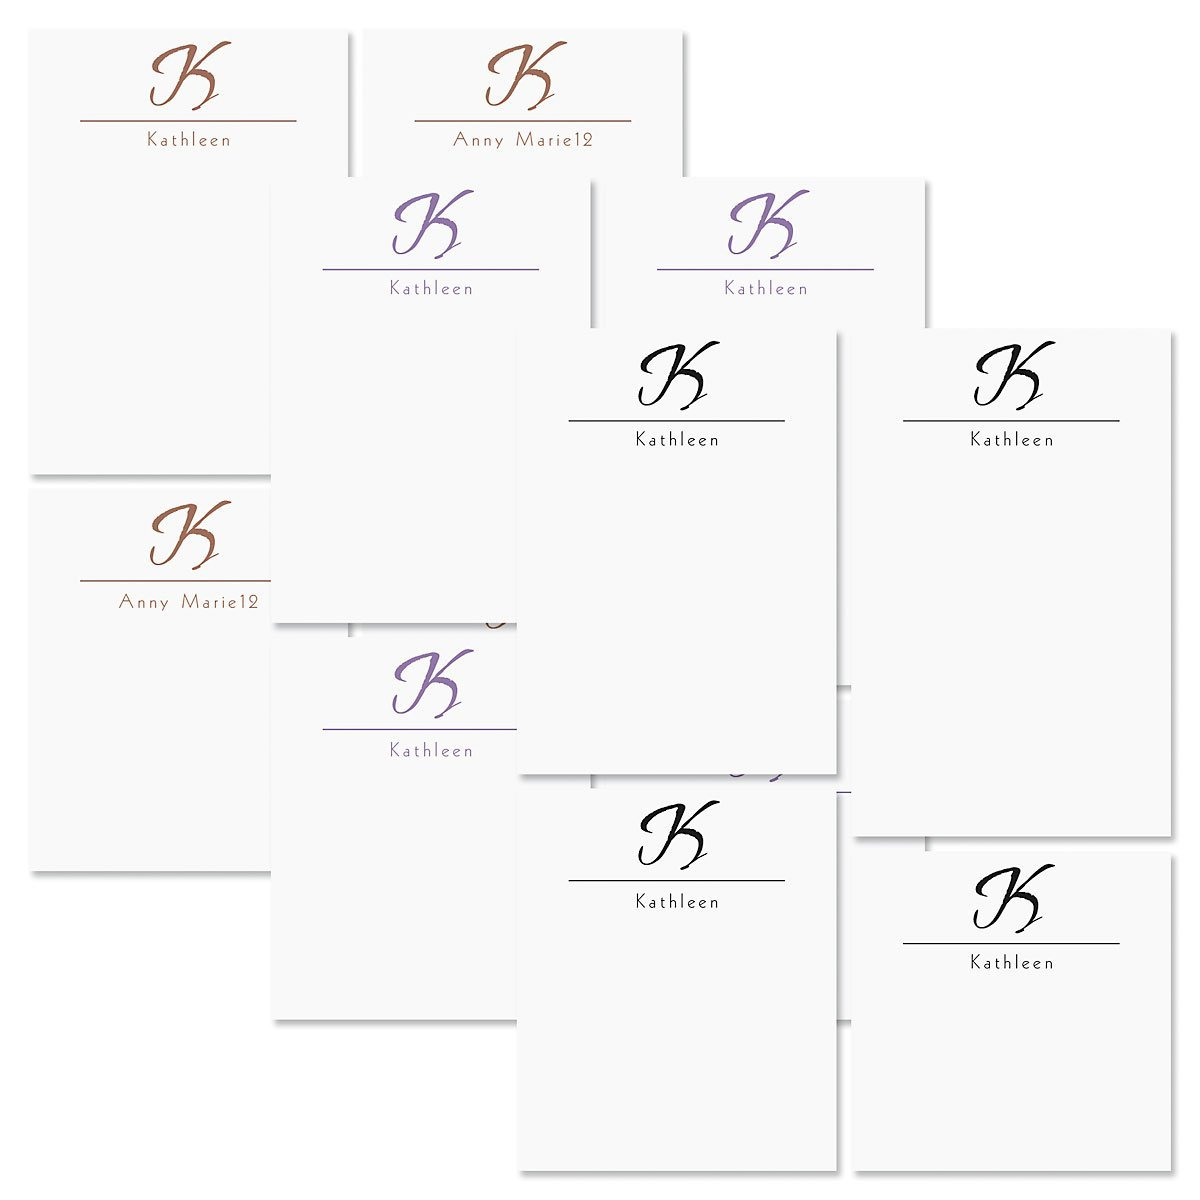 "Inspirational Personalized Notepad Set - 3 Color Choices, Set of 4 100-sheet pads, Add Your Name and Initial, Largest pad 4-1/4"" x 6-3/4"", Personalized Stationery, Graduation"